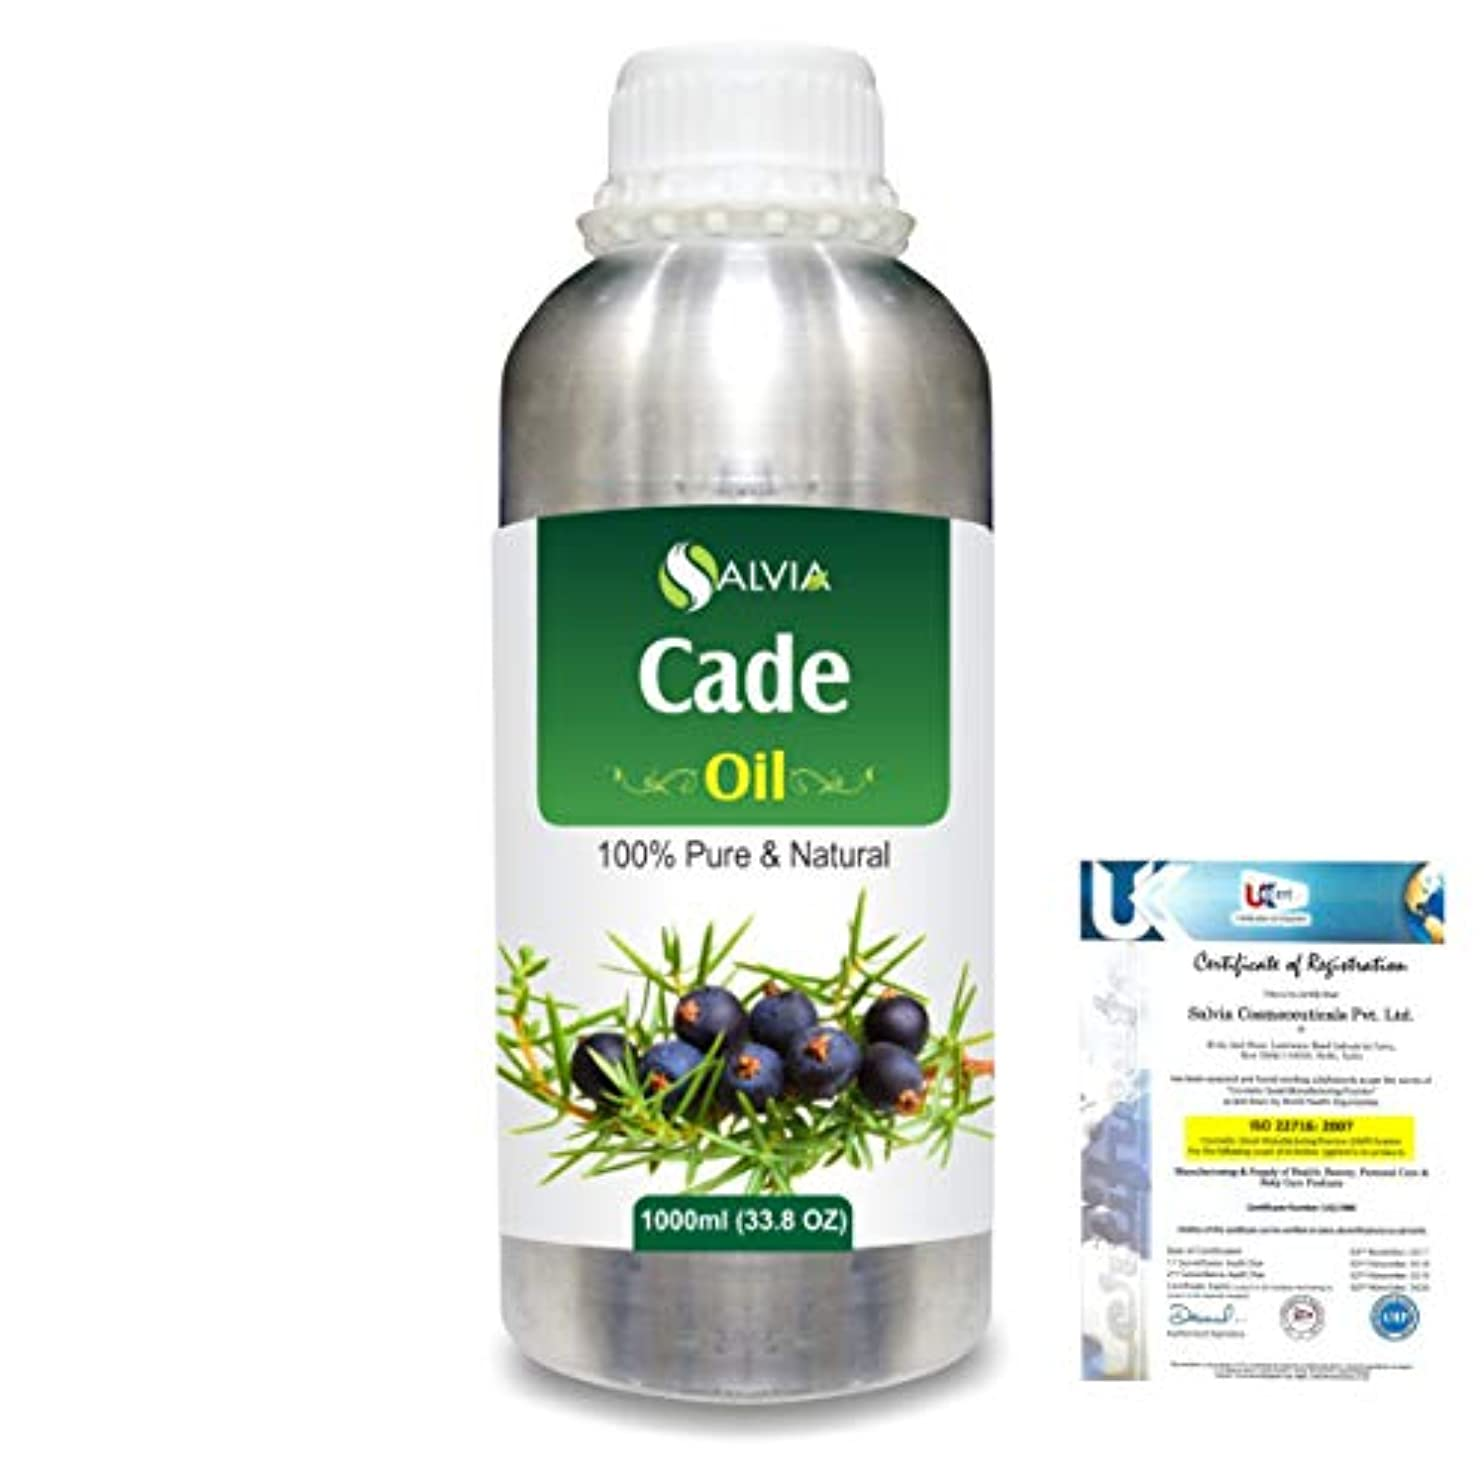 マーチャンダイジングレギュラーバーCade (Juniperus oxycedrus) 100% Natural Pure Essential Oil 1000ml/33.8fl.oz.